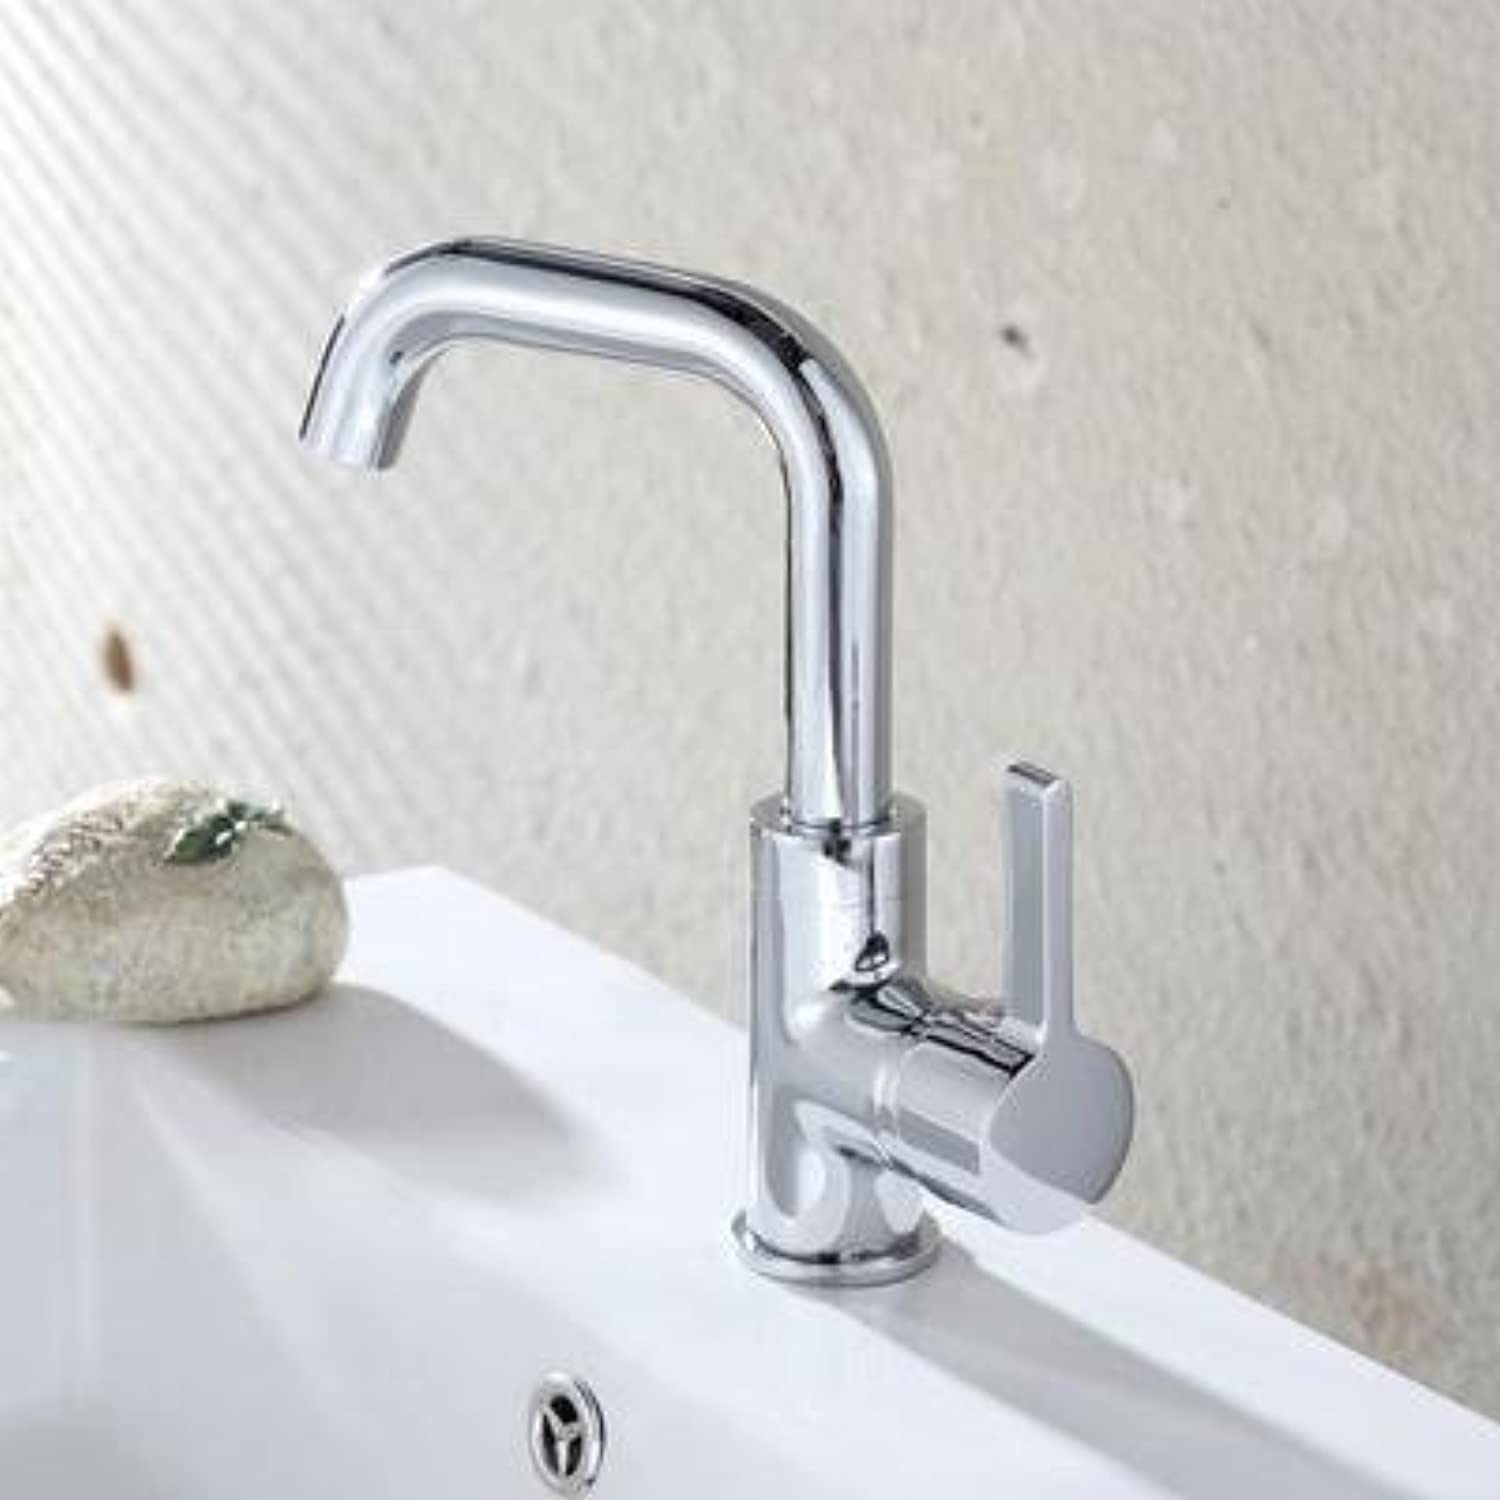 Hot and Cold Washbasins, Household Faucets, Water Faucets, Household Kitchen Faucets.